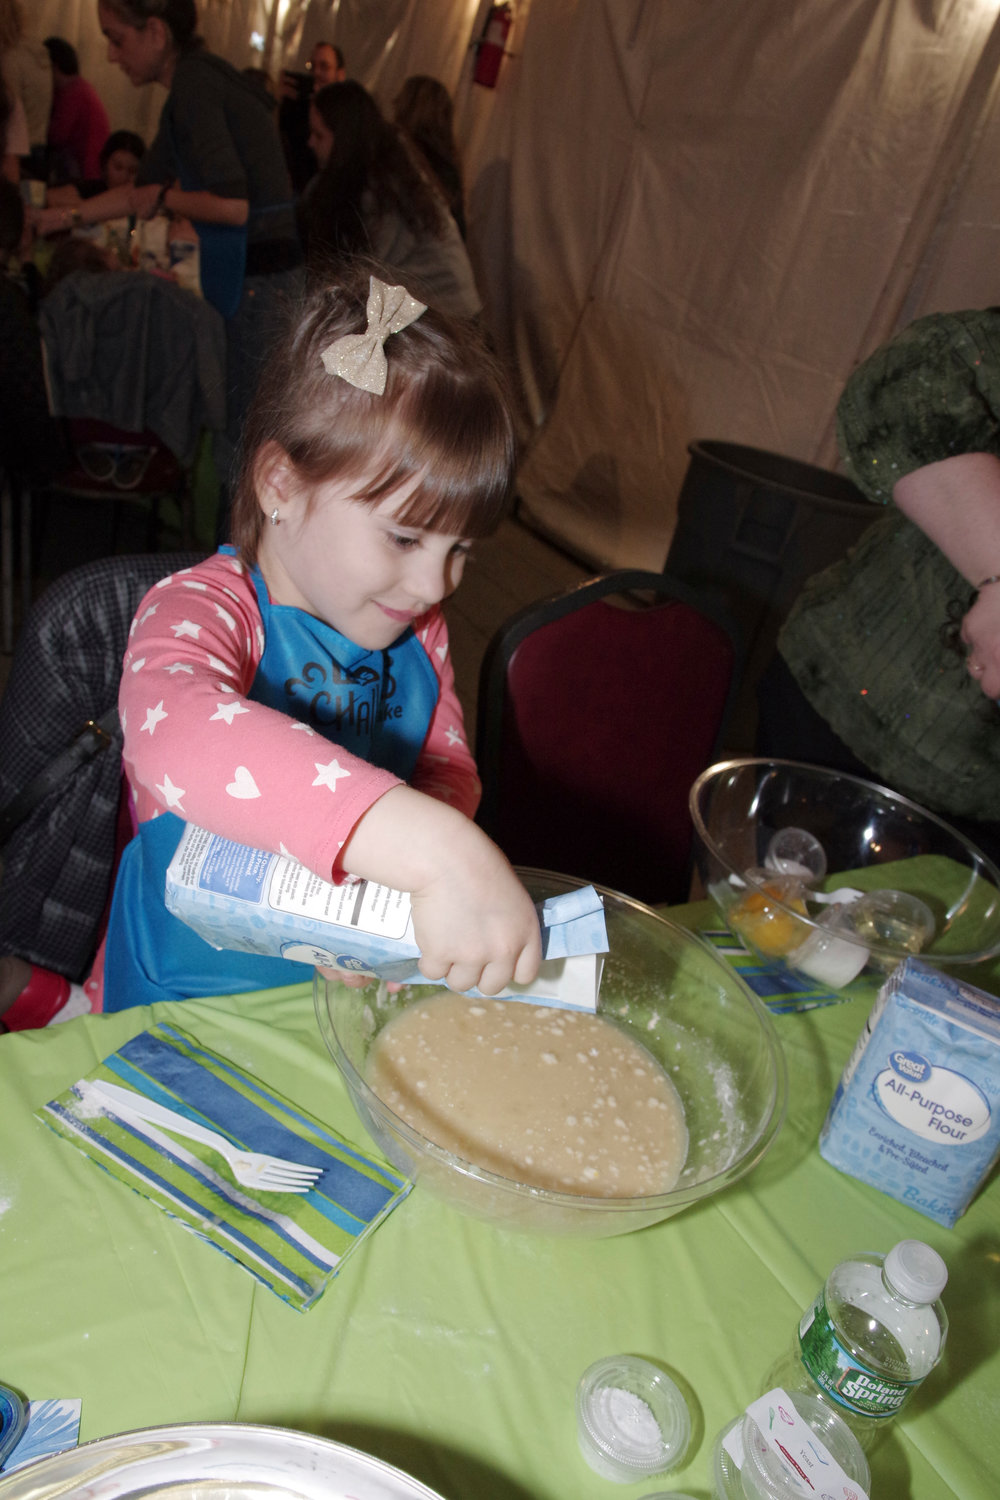 Sofia Gavrylyuk, 4, showed her pouring skills at the challah bake.